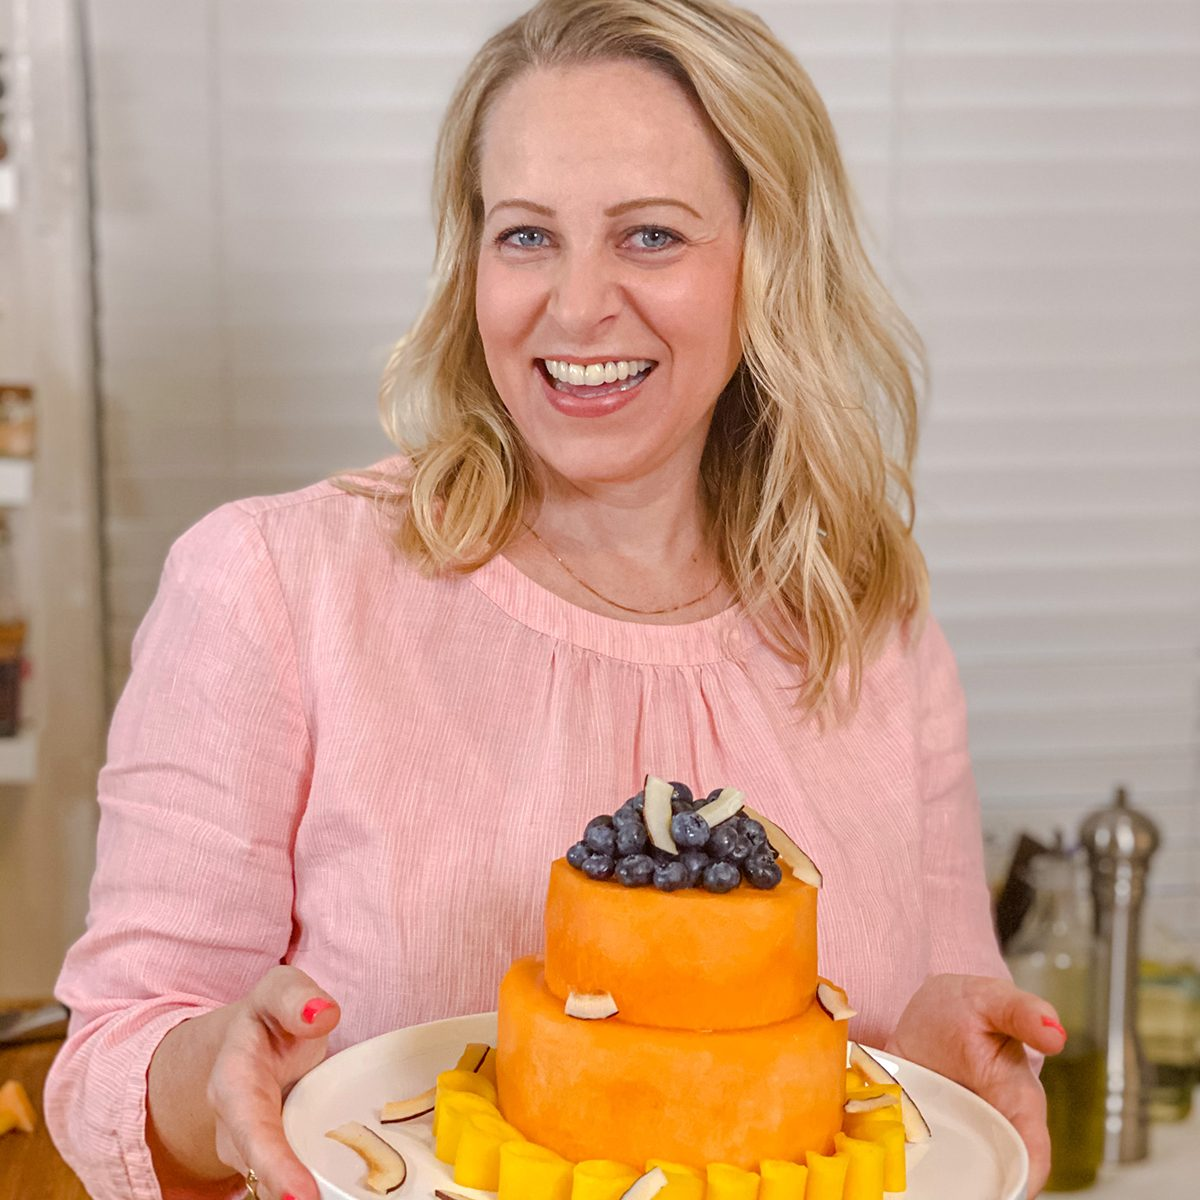 Tara Teaspoon holding her stunning melon cake